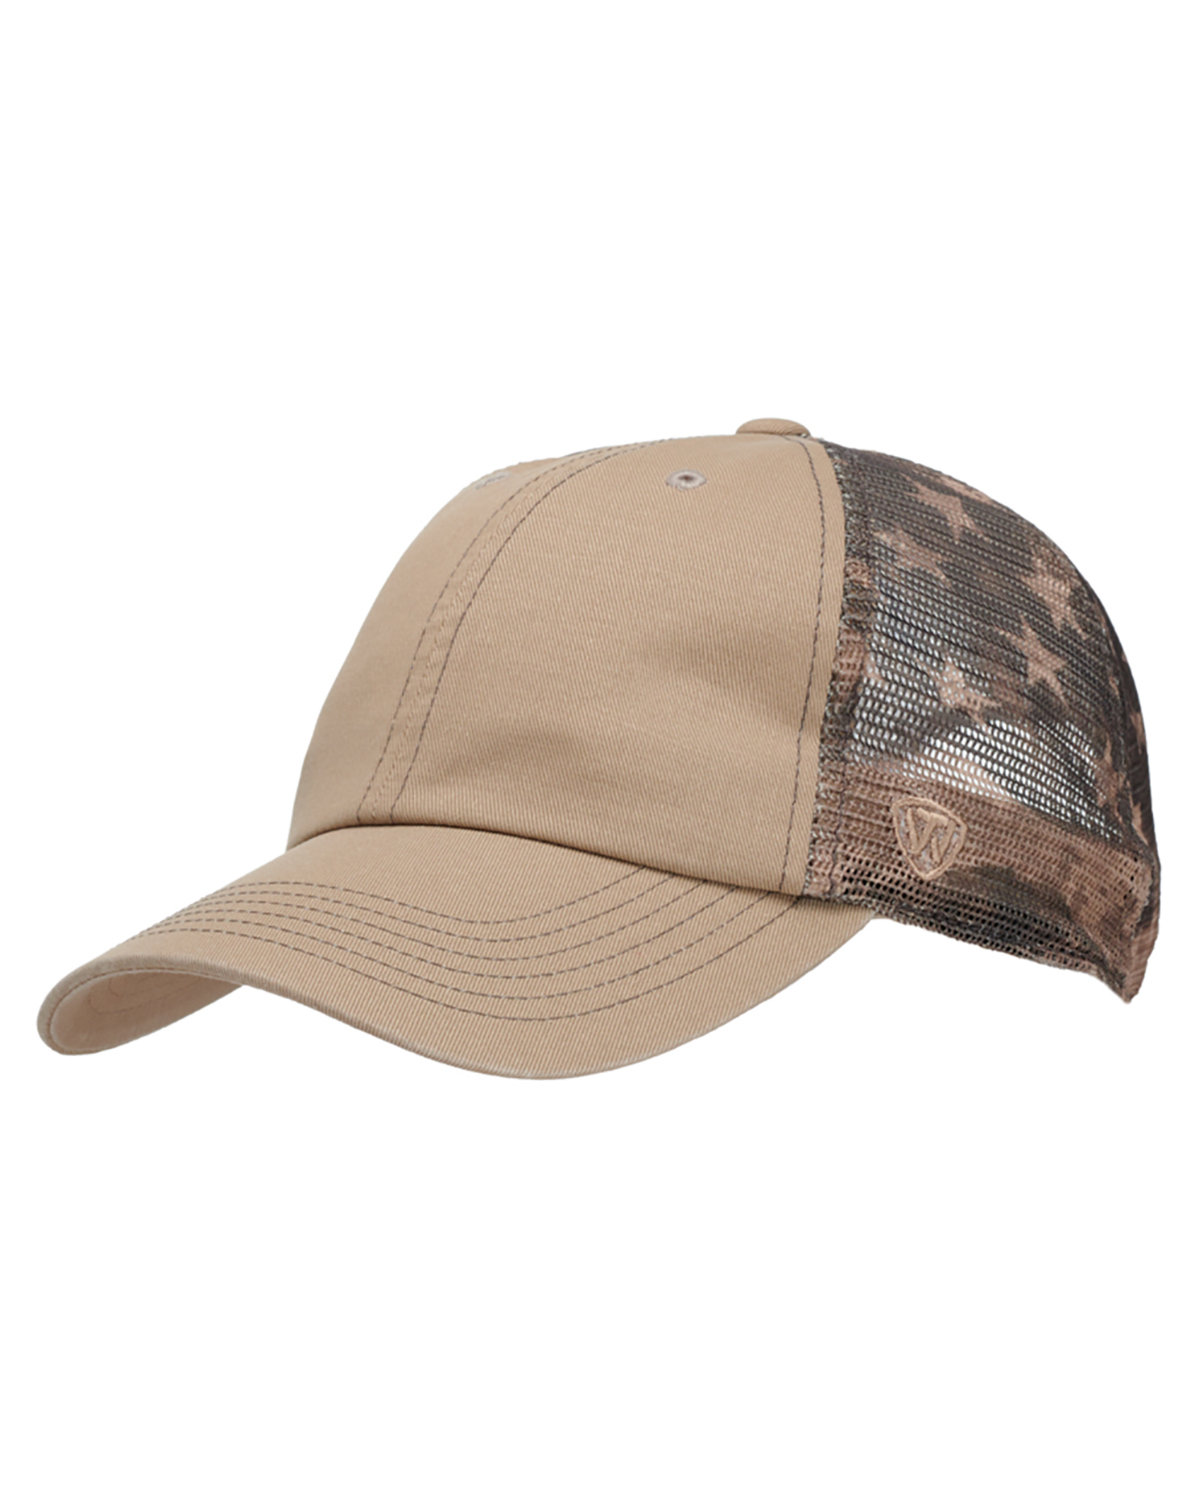 Top Of The World Adult Offroad Cap KHAKI FLAGTACULR